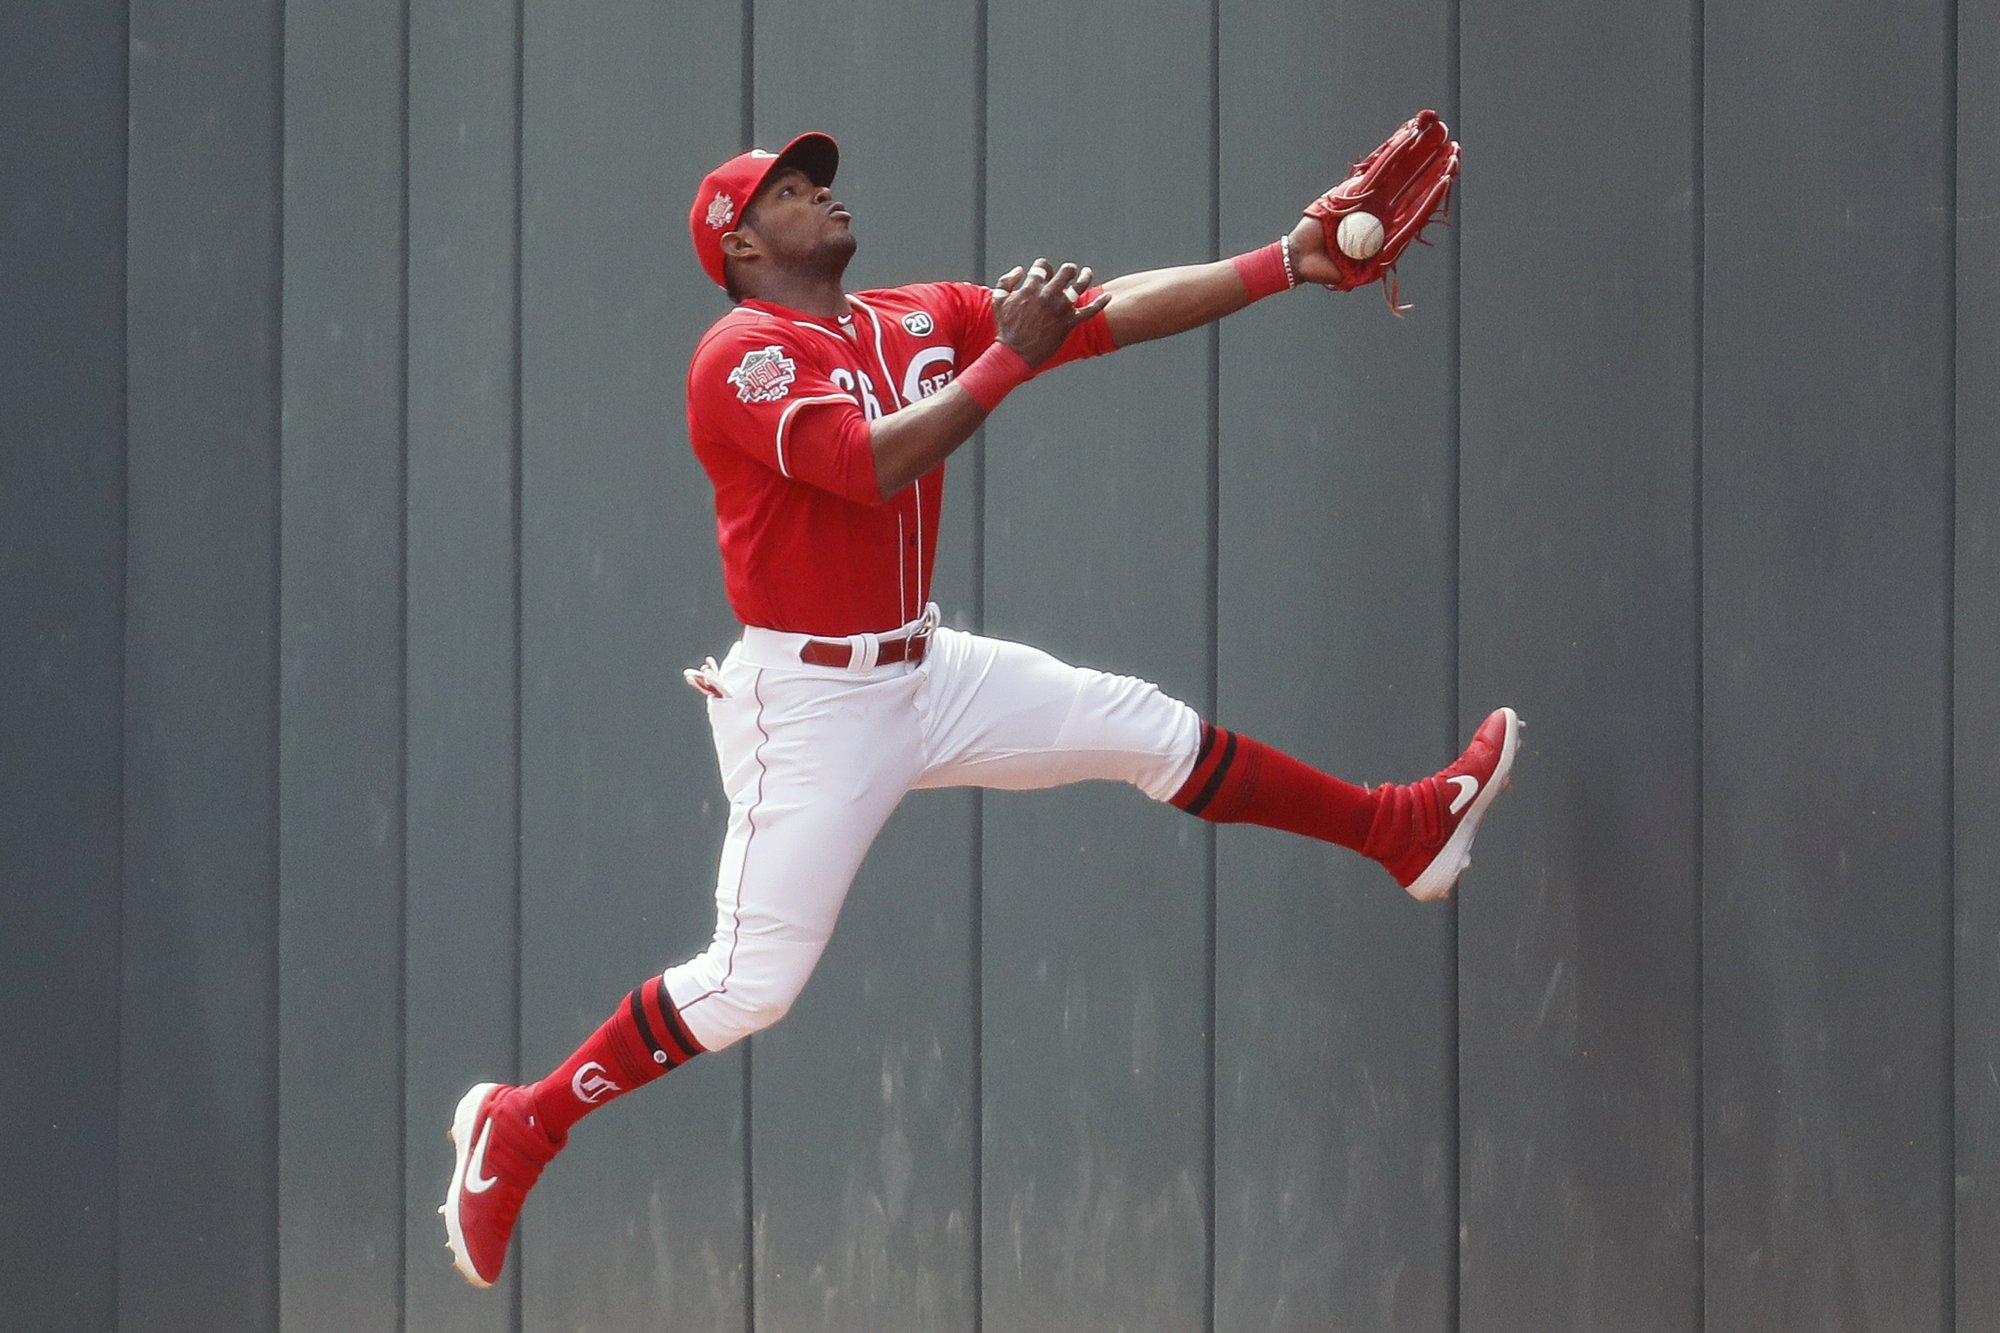 Puig returns with RBI double, Reds sweep Marlins